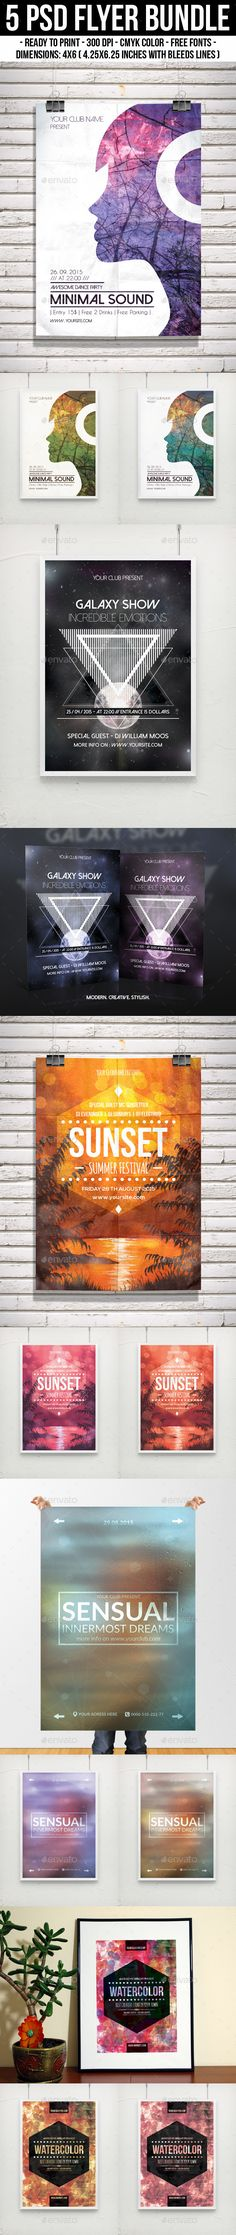 Buy Flyer Bundle by djjeep on GraphicRiver. This pack includes 5 PSD Flyer / Poster Templates. – Perfect for Summer party, gig, c. Club Poster, Party Poster, Gig Poster, Print Templates, Poster Templates, Flyer Template, Hipster Party, Art Festival, Festival Flyer